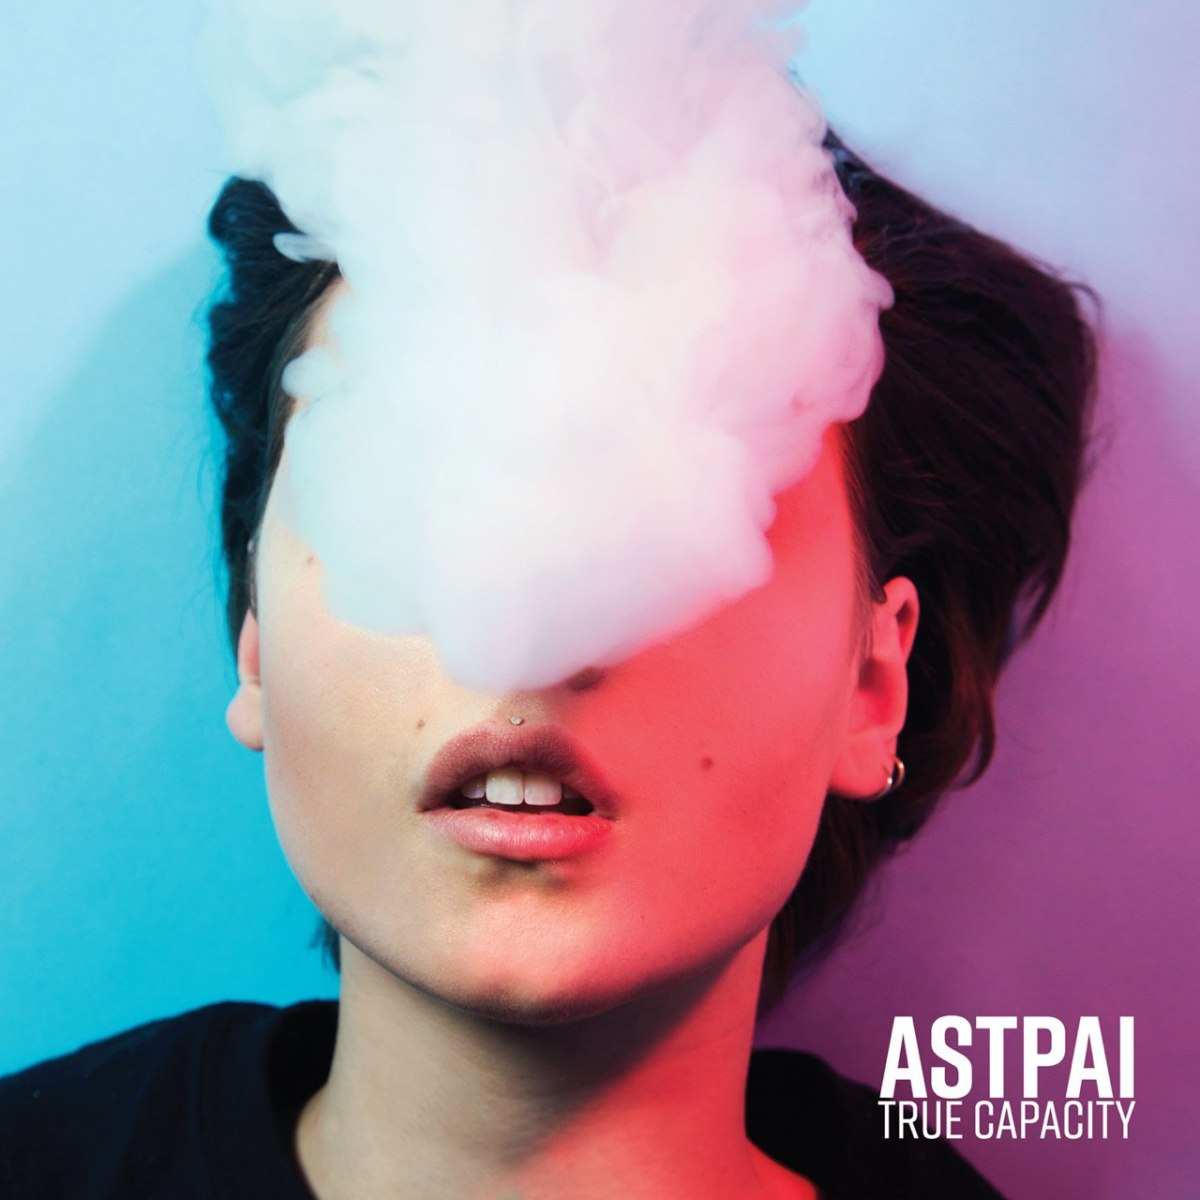 Album Review: Astpai - True Capacity